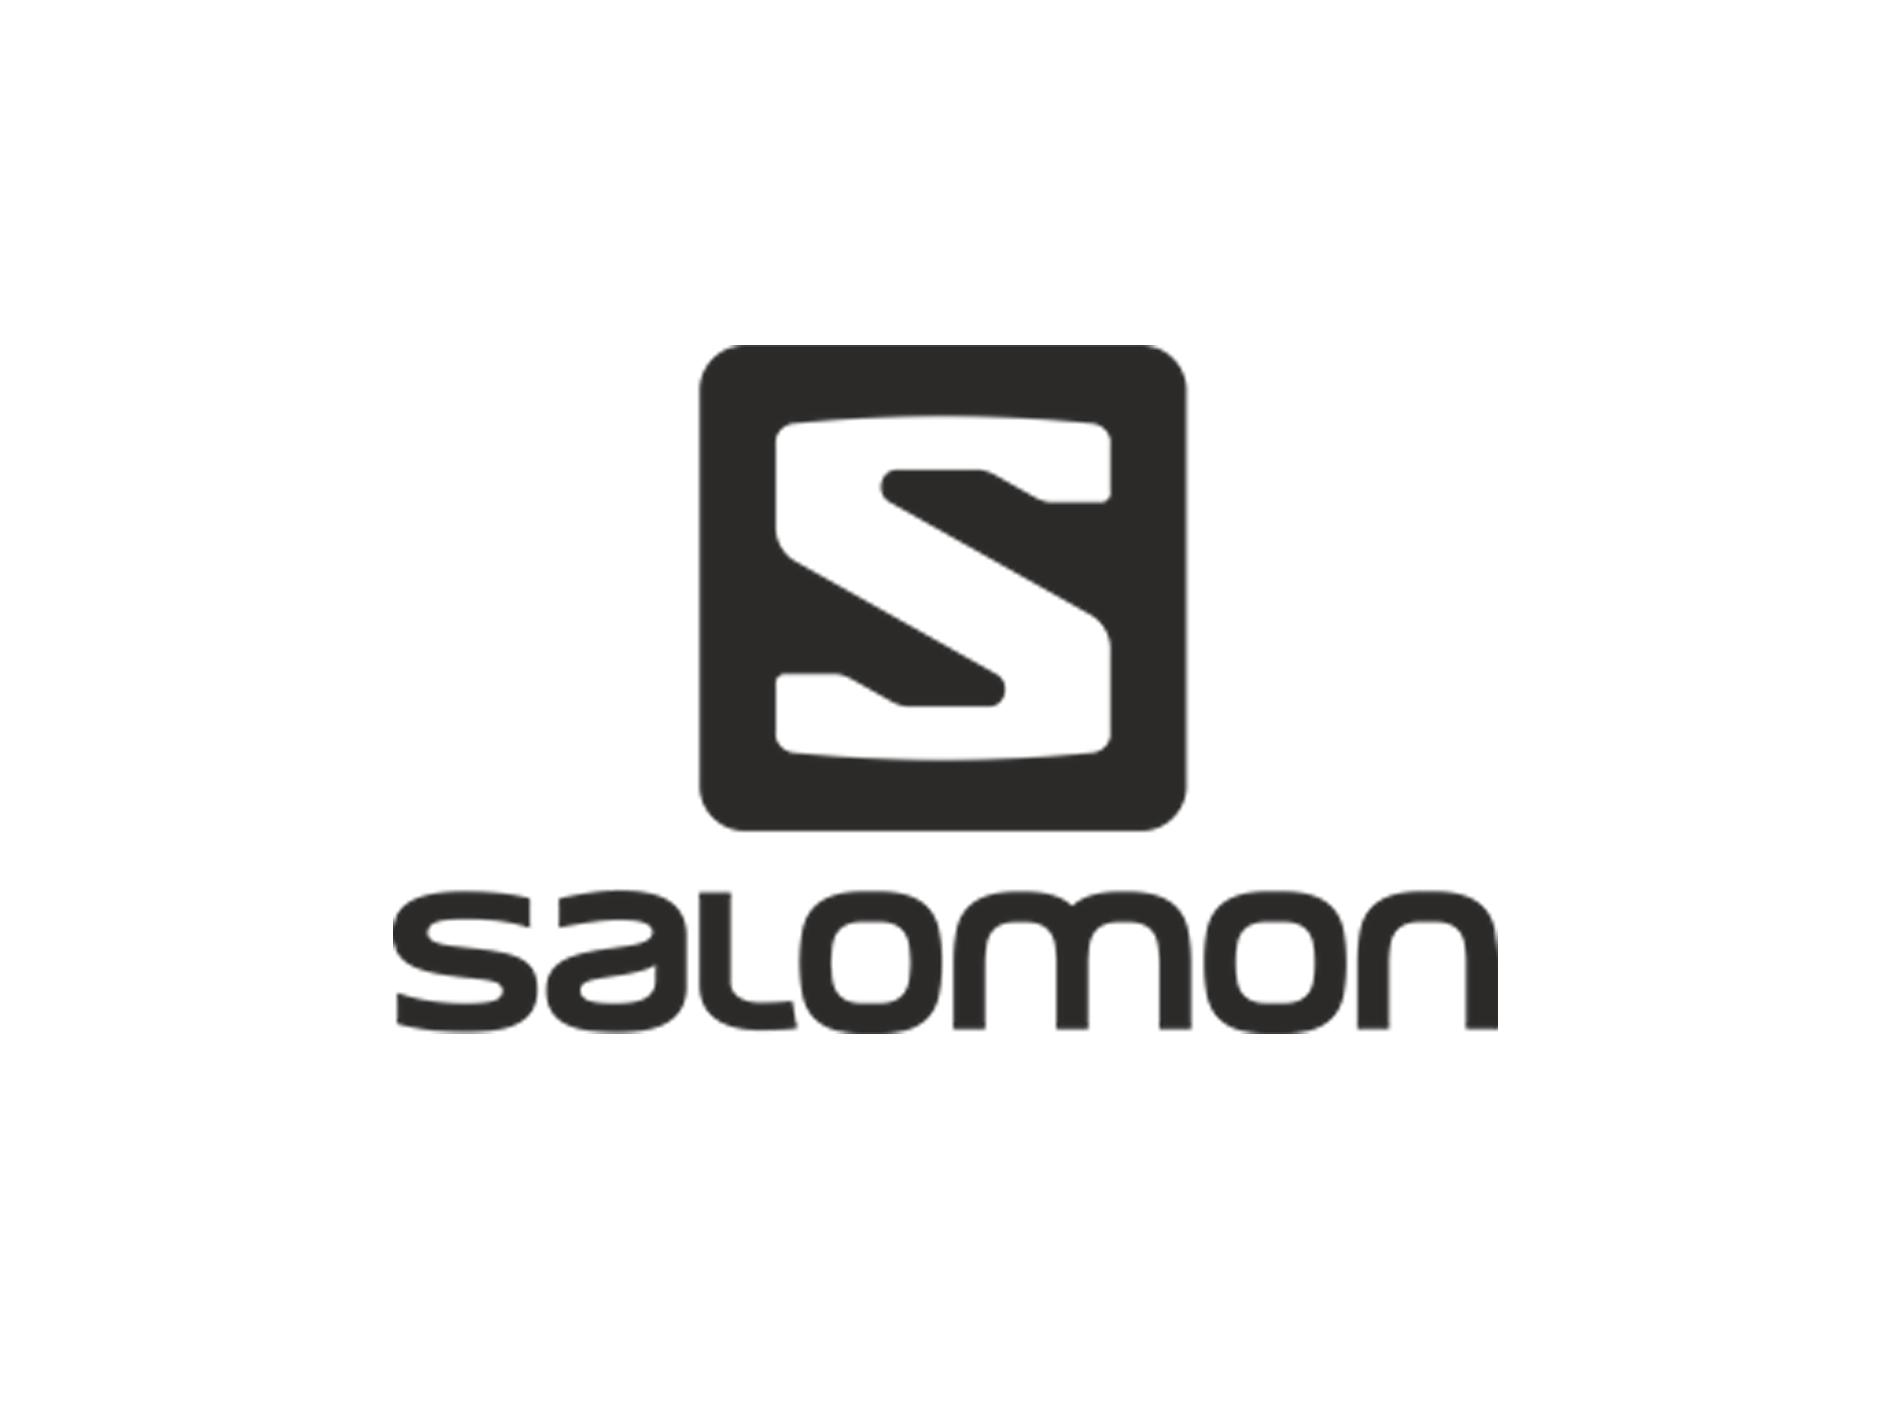 Salomon Black Web.png